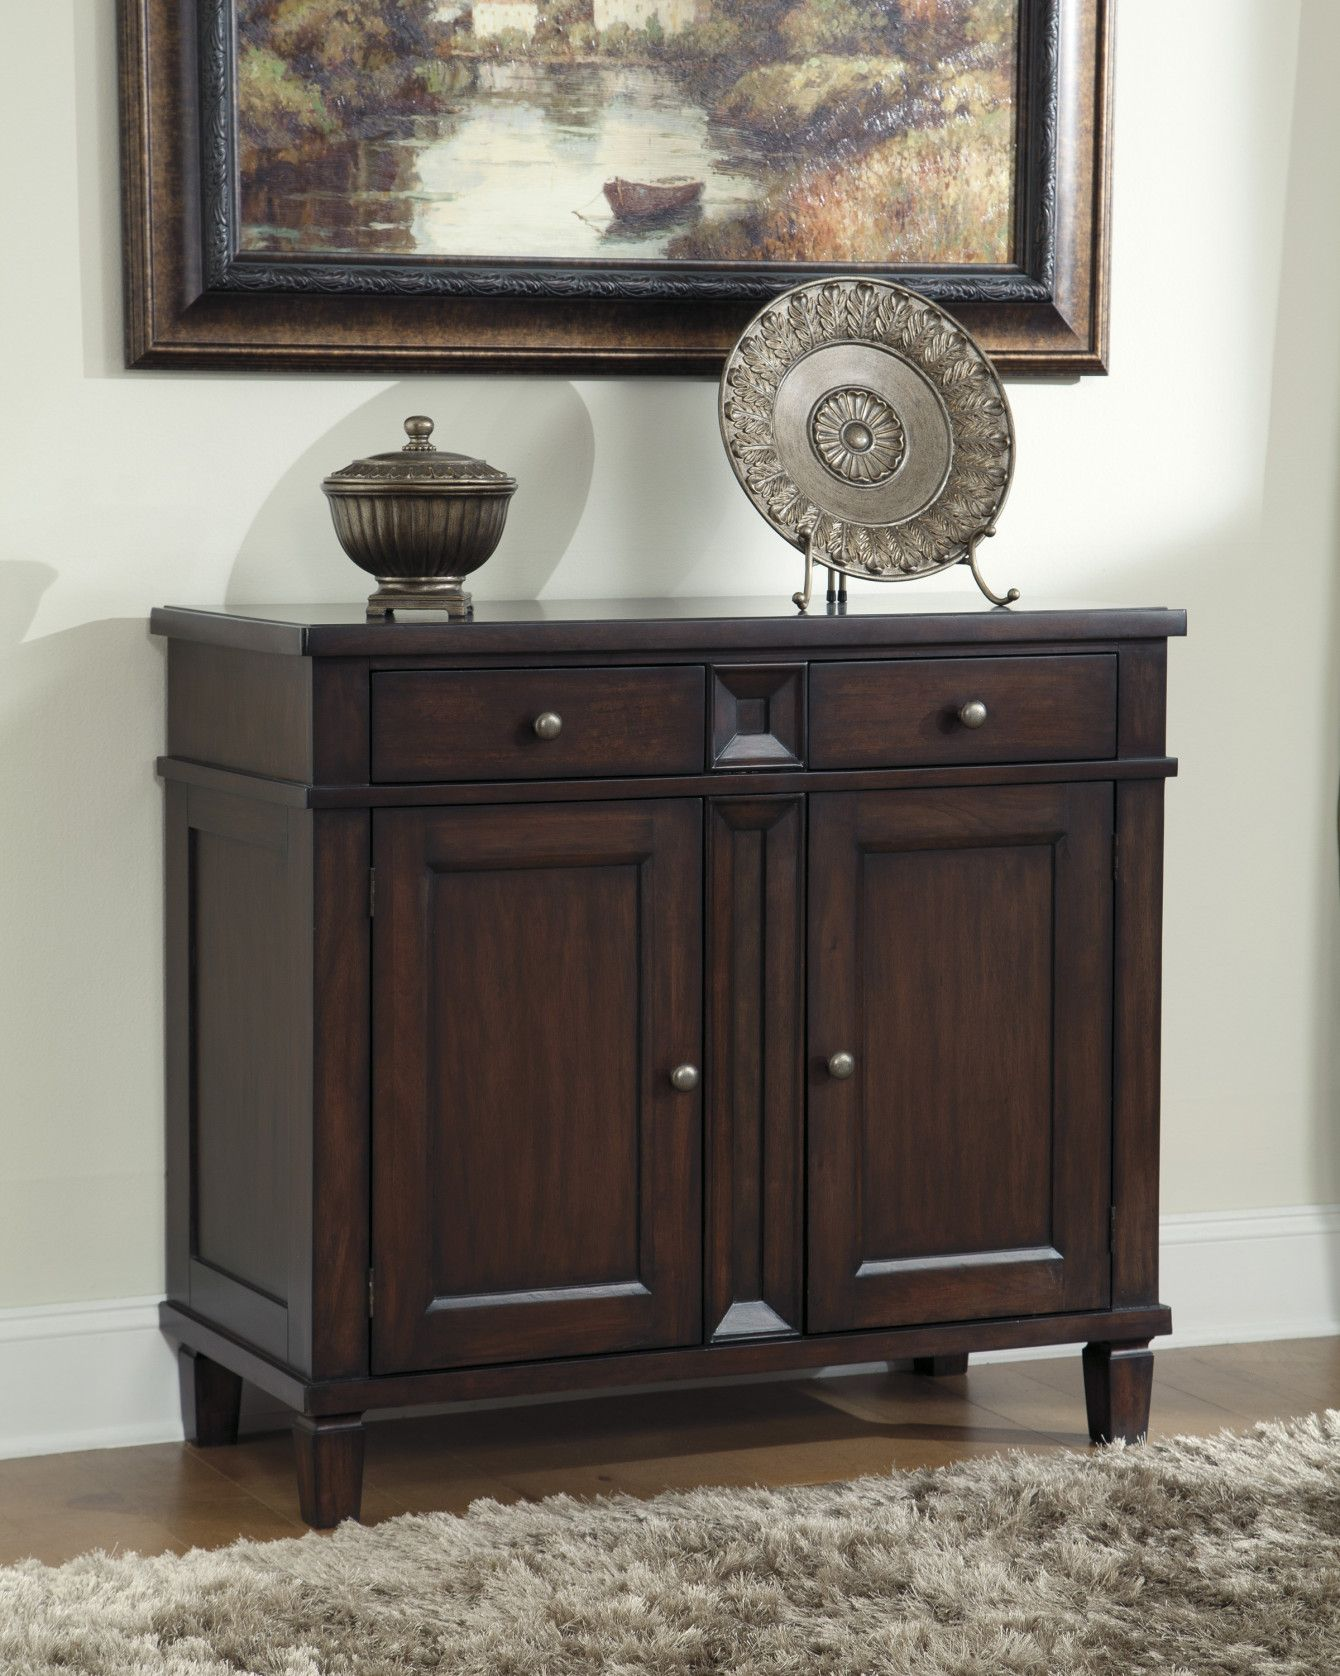 Best 2018 Accent Cabinets And Chests Small Kitchen Island 400 x 300